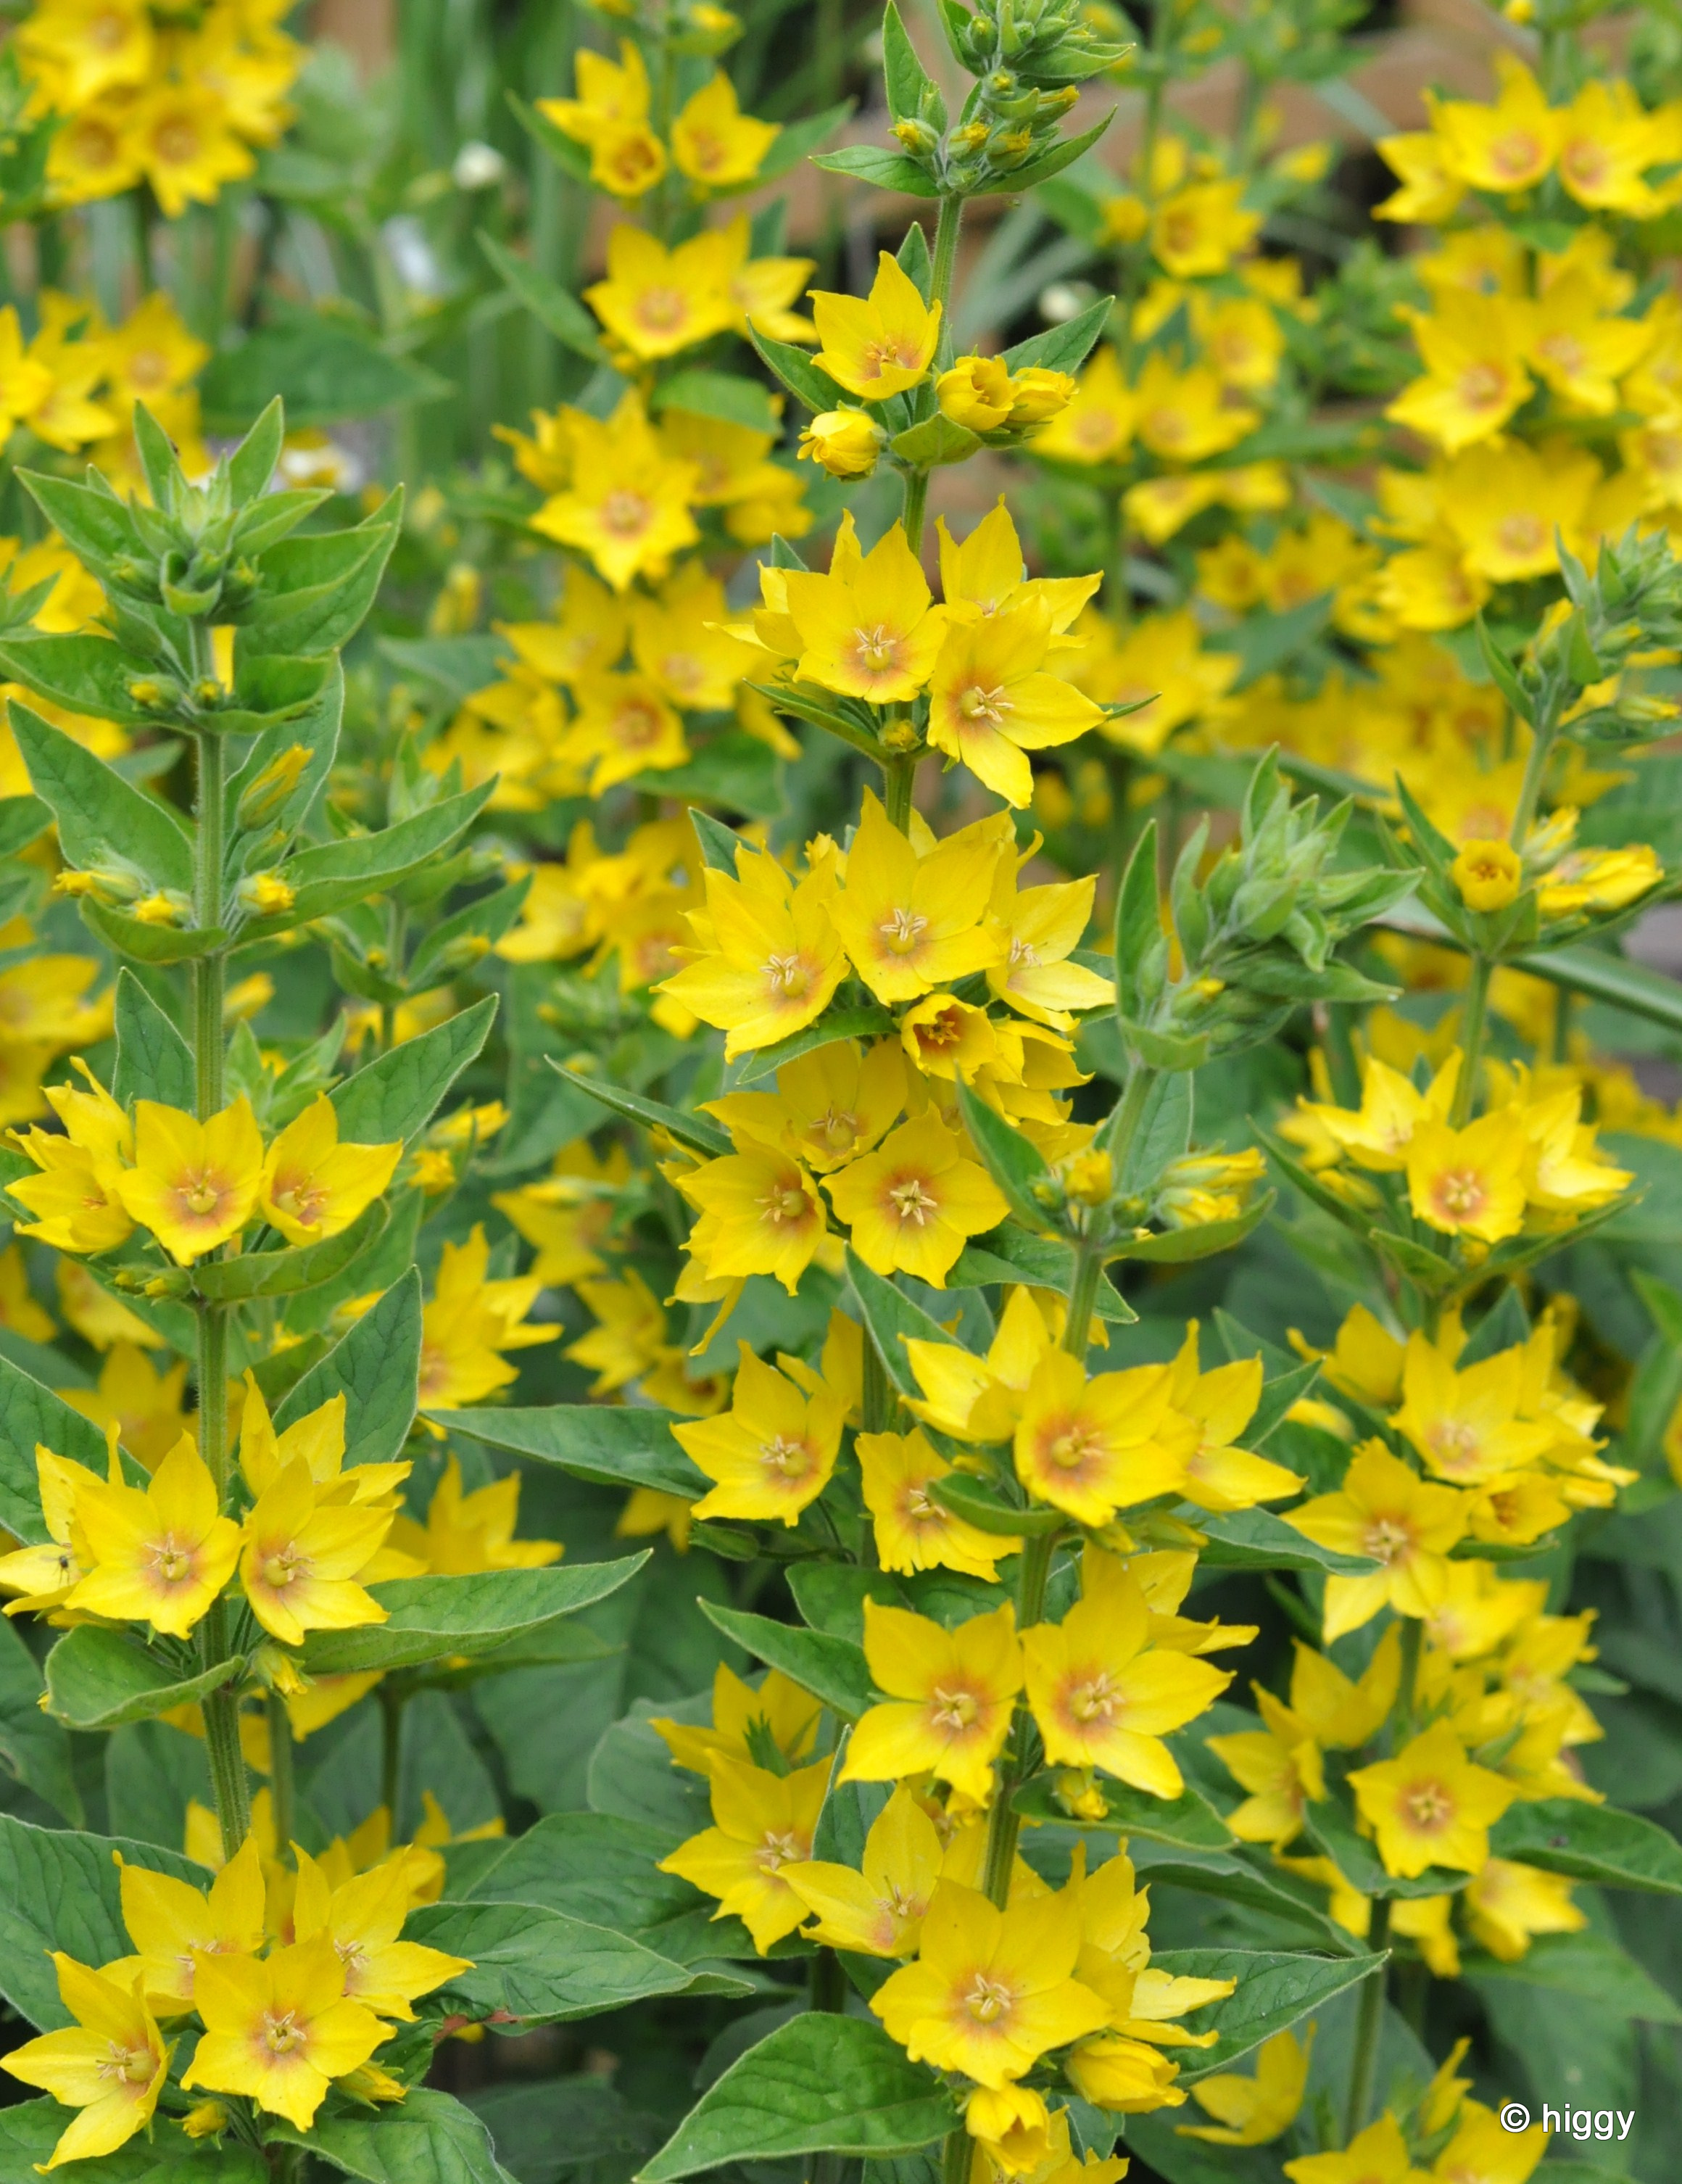 Free Photo Yellow Garden Flower Nature Natural Outdoors Free